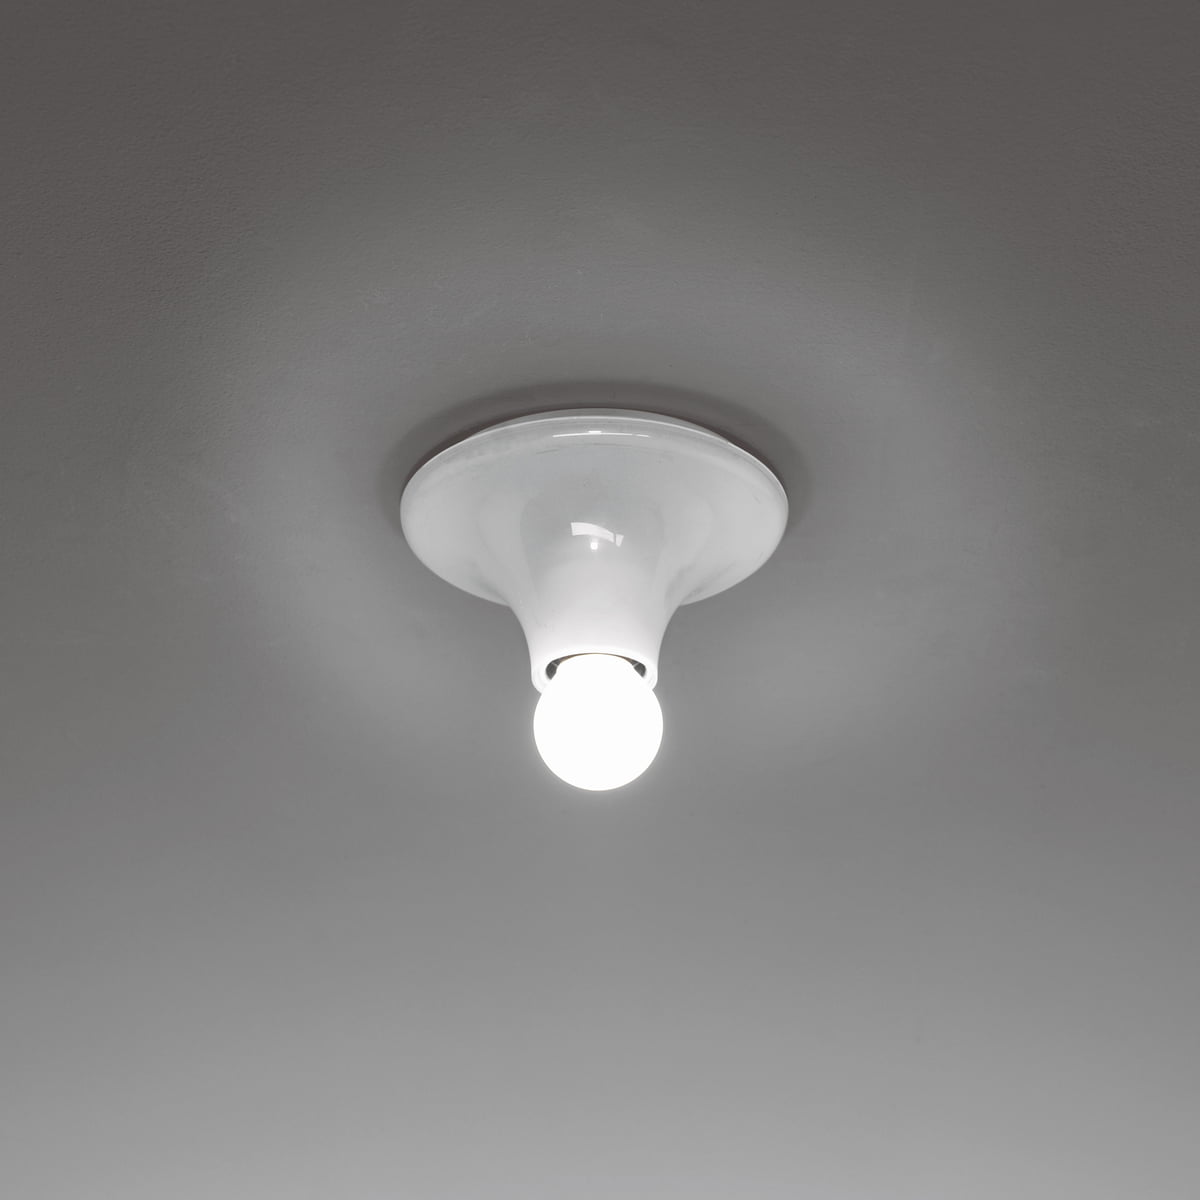 Artemide Teti wall and ceiling l& white & Teti wall and ceiling light by Artemide azcodes.com